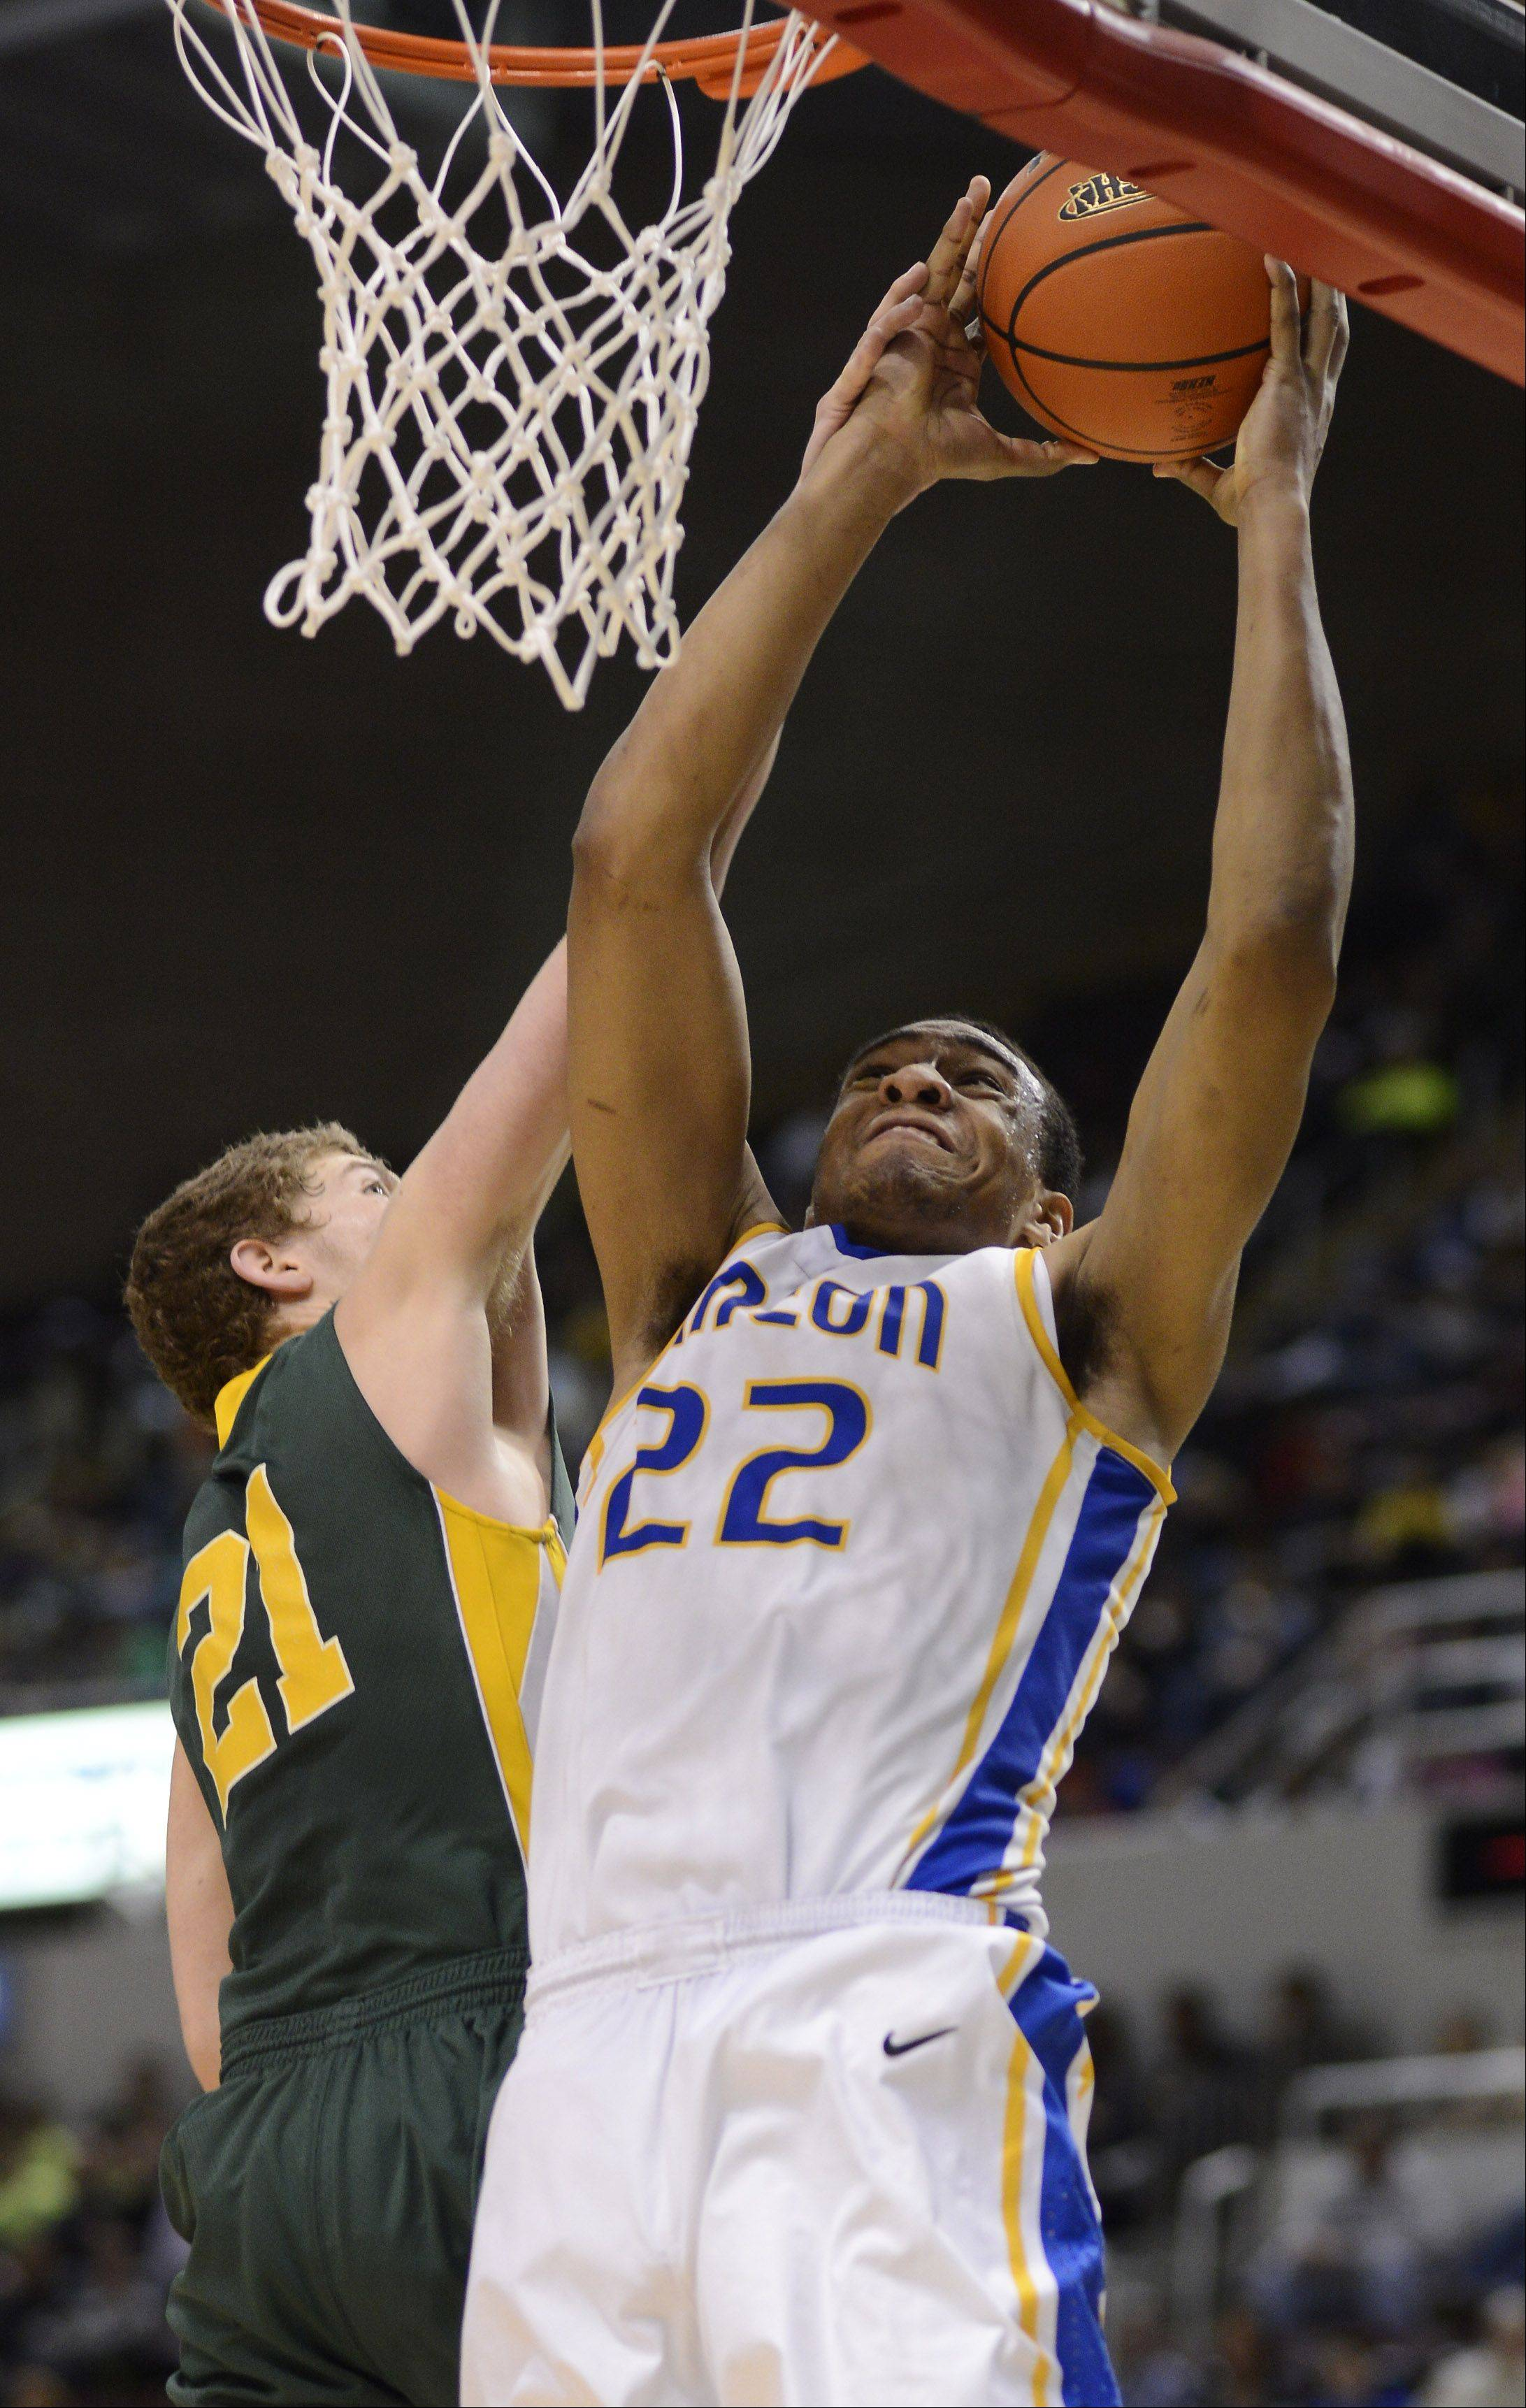 Stevenson's Andrew Stempel, left, tries to stop Simeon's Jabari Parker during the Class 4A boys basketball state finals at the Carver Arena in Peoria Saturday.